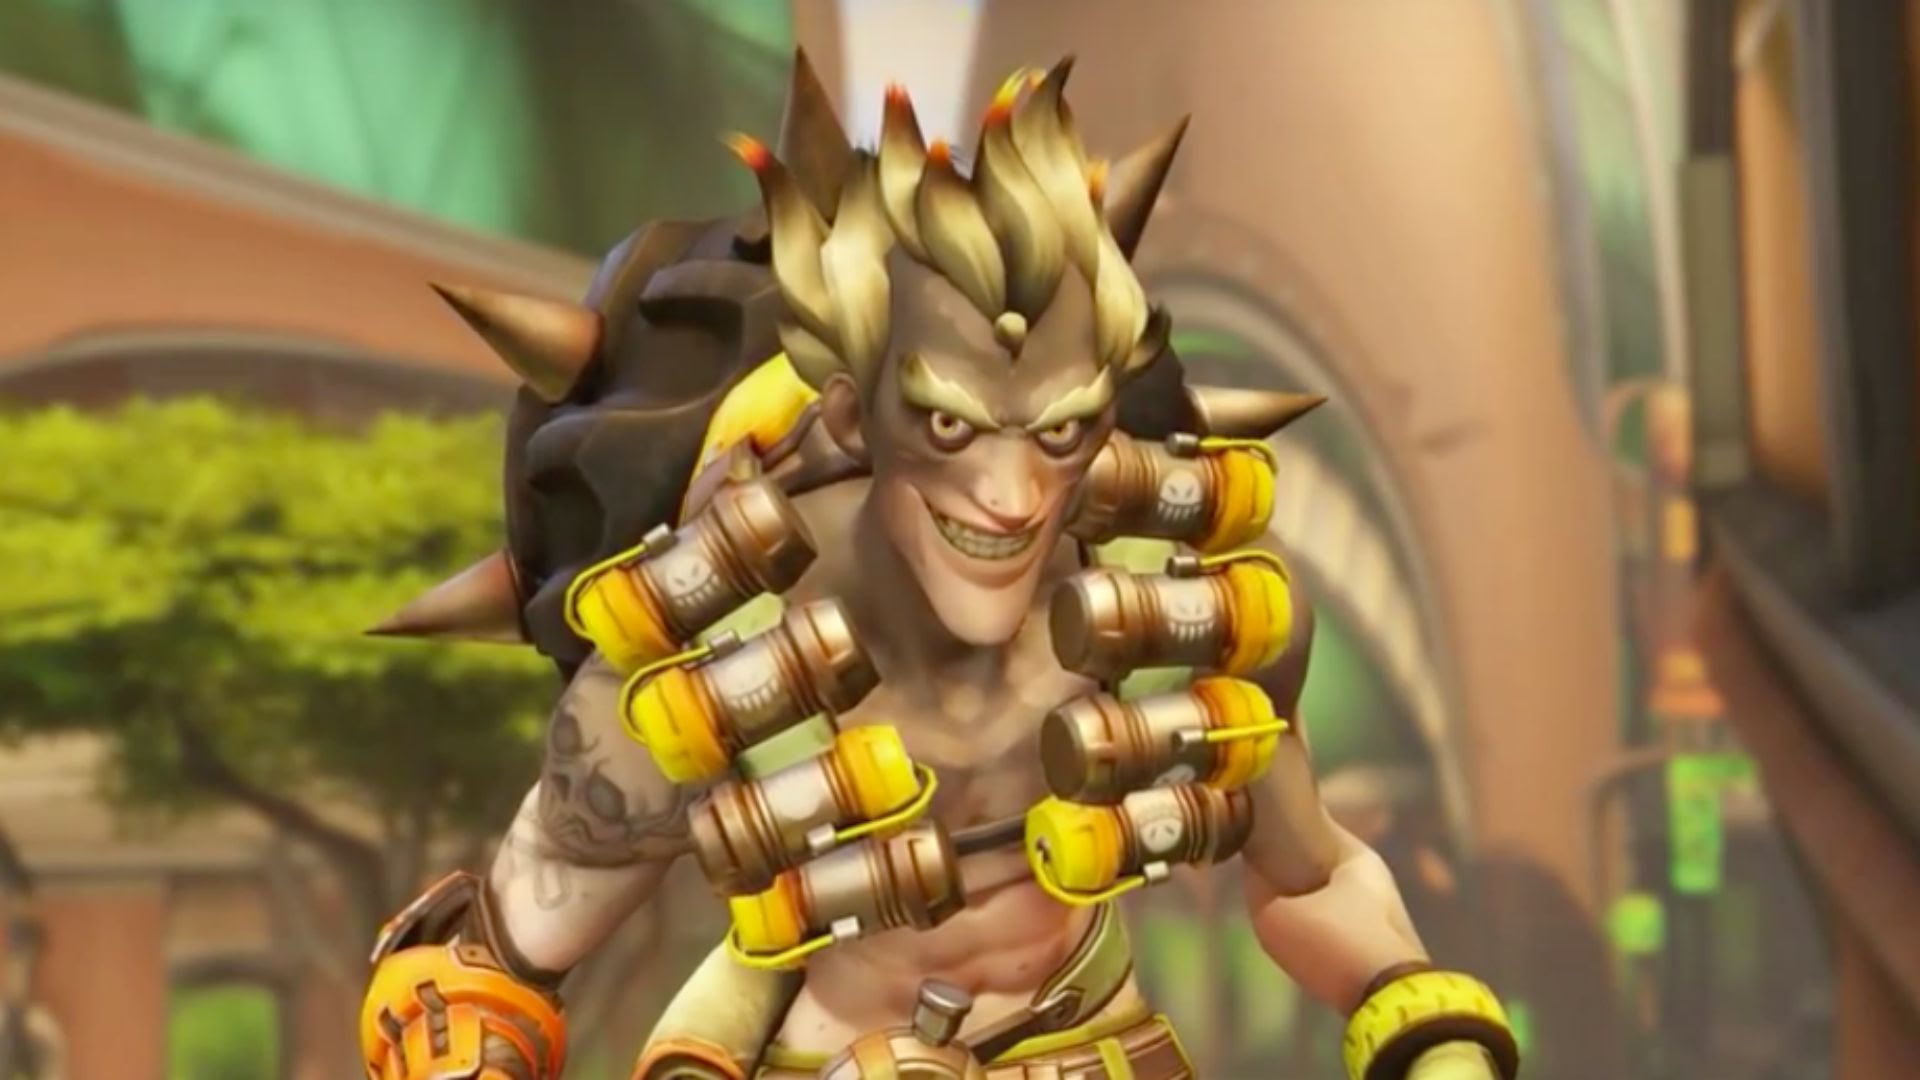 Overwatch : Junkrat widescreen wallpapers